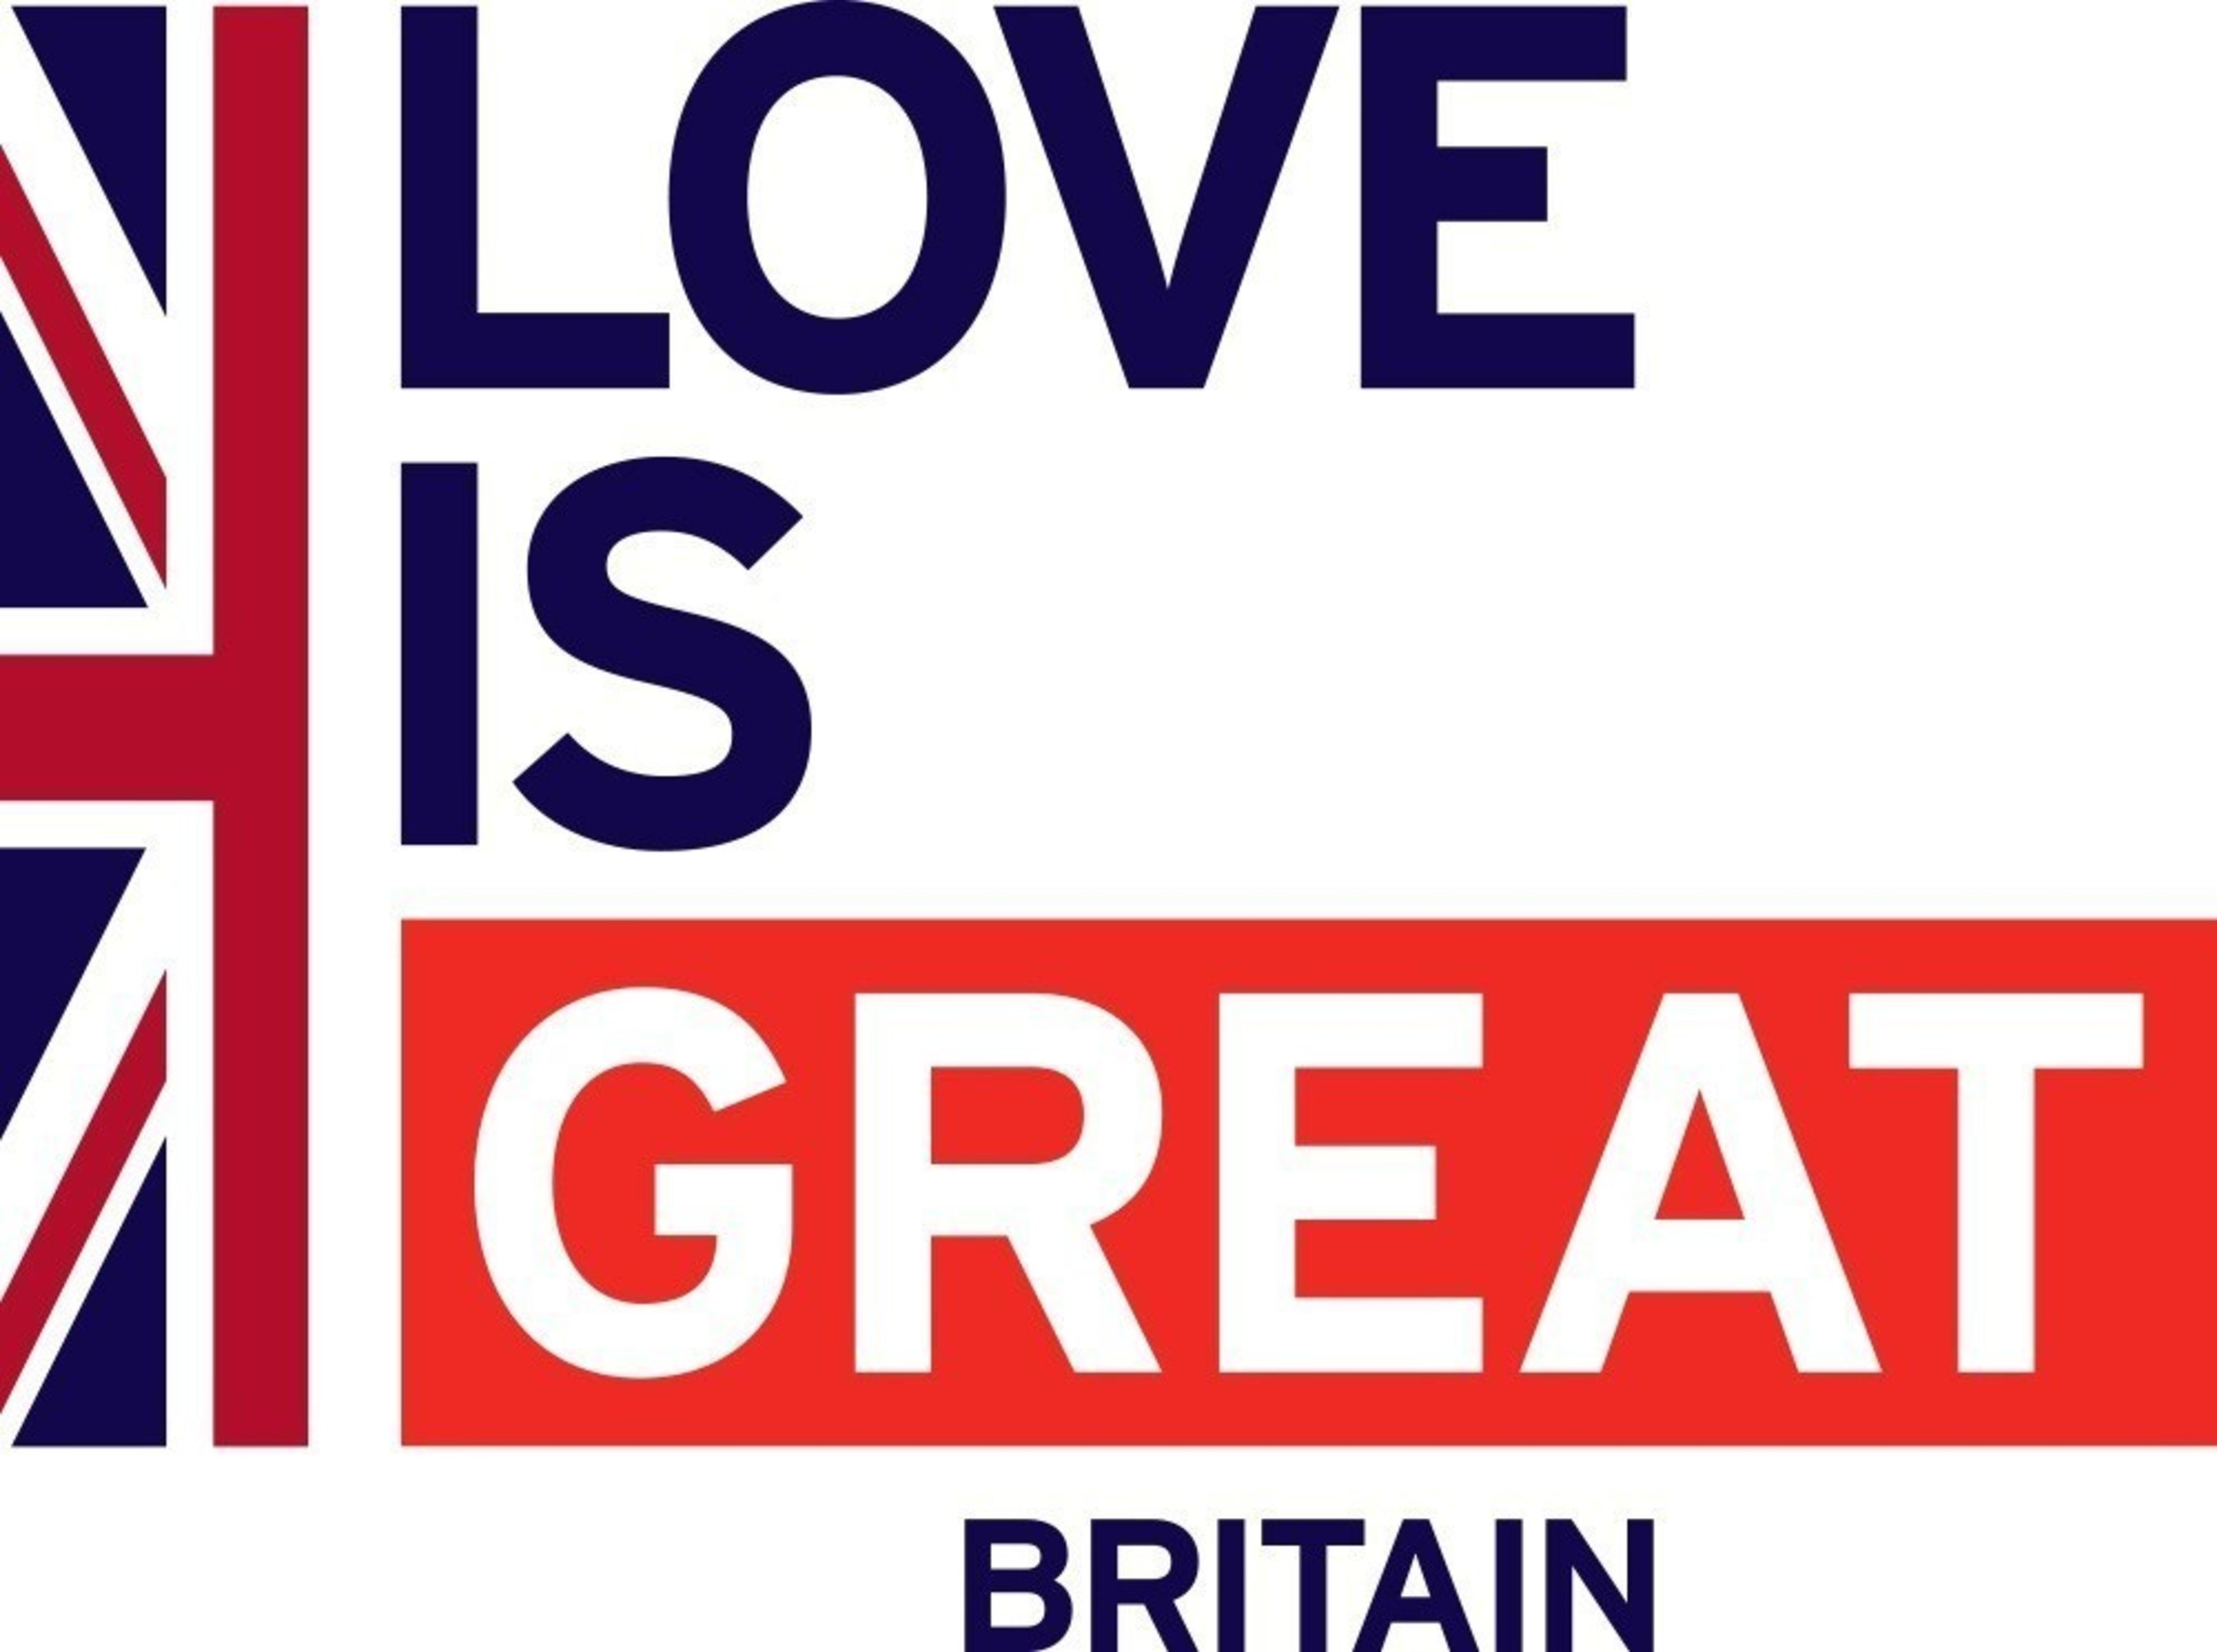 Love Is GREAT Britain: A Welcoming Country For All